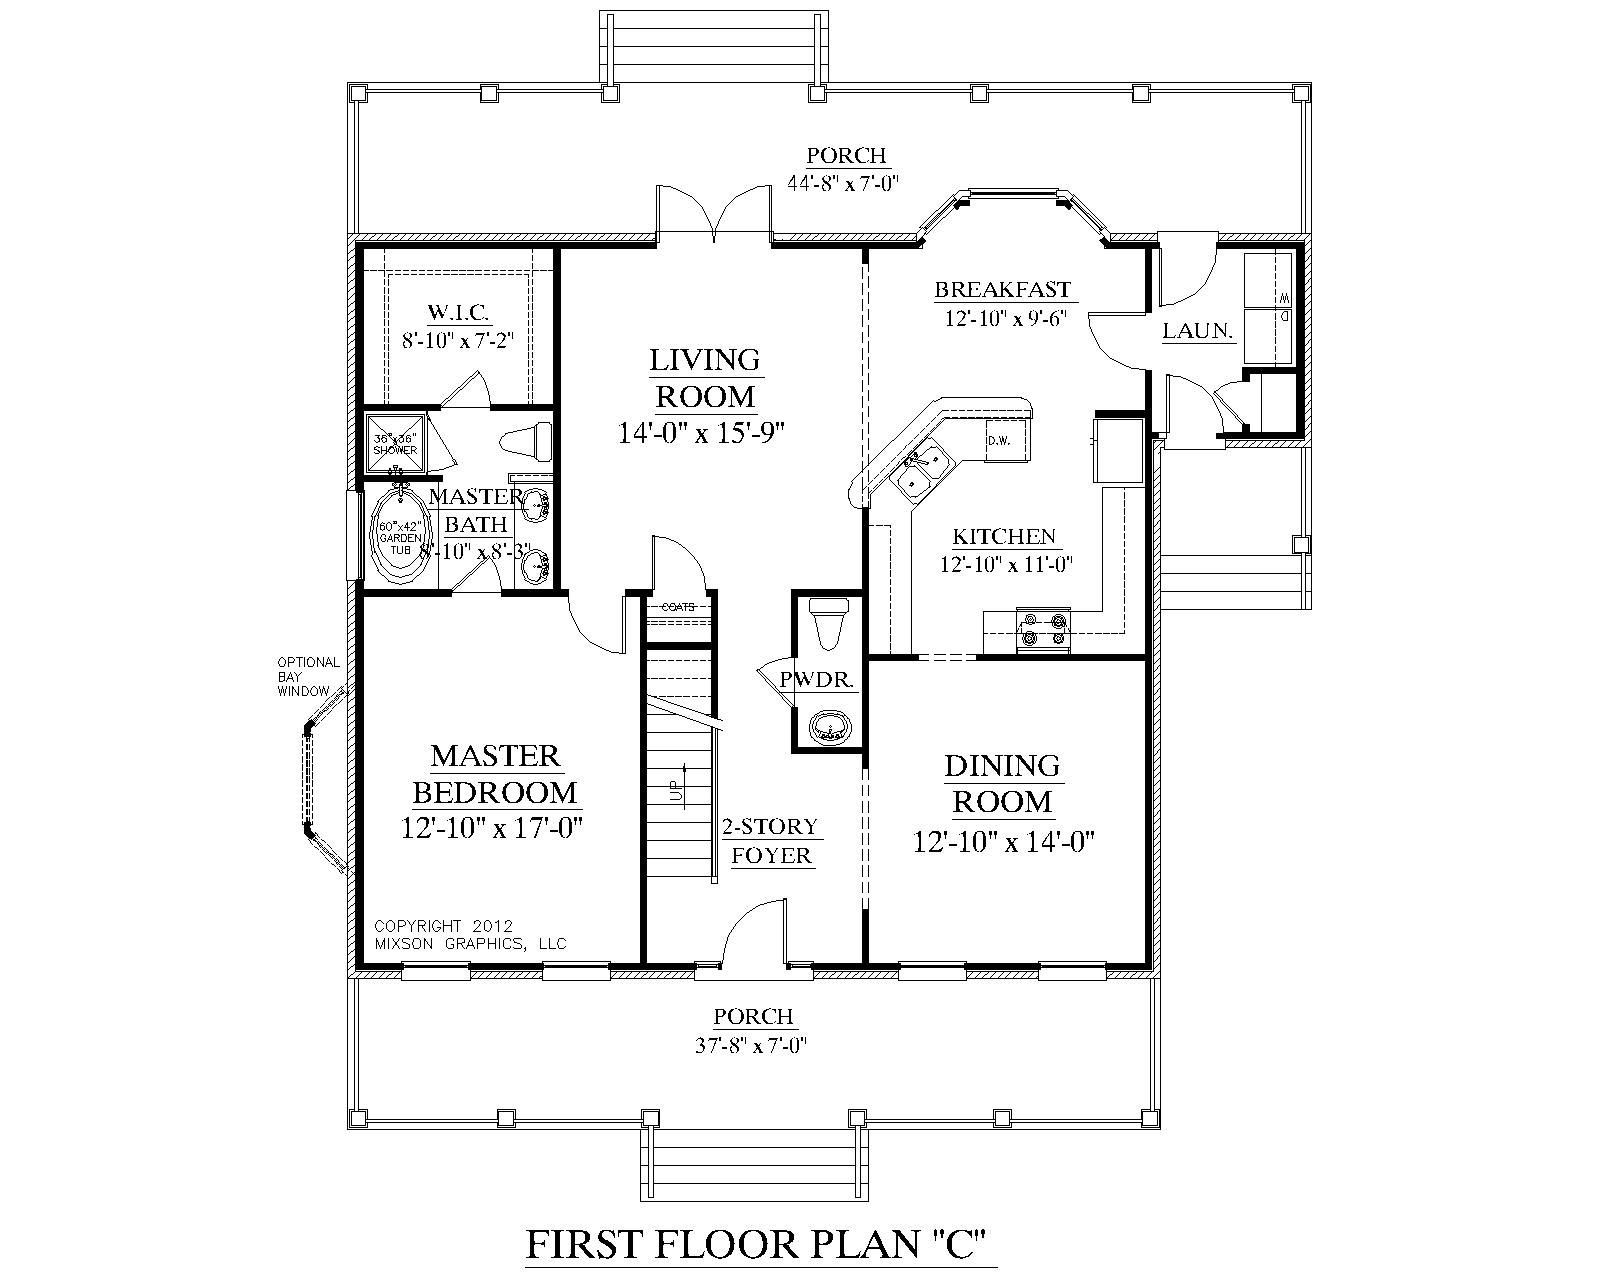 Best Of Small House Plans With Master Bedroom On First Floor And View Garage Floor Plans Bedroom Floor Plans Two Story House Plans